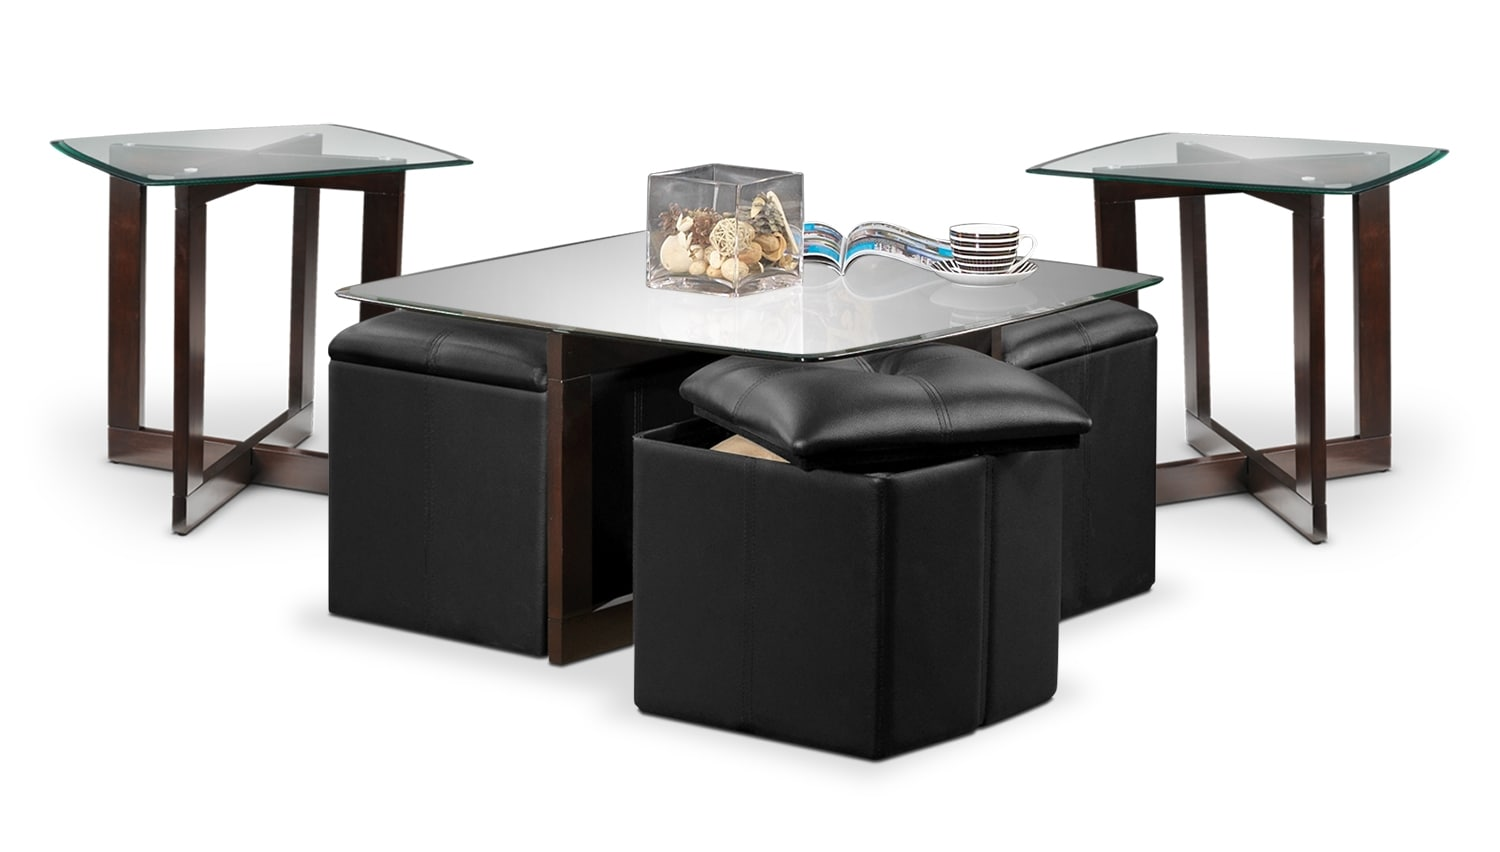 Accent and Occasional Furniture - Neera Coffee Table, Two End Tables and Ottomans - Chocolate and Black